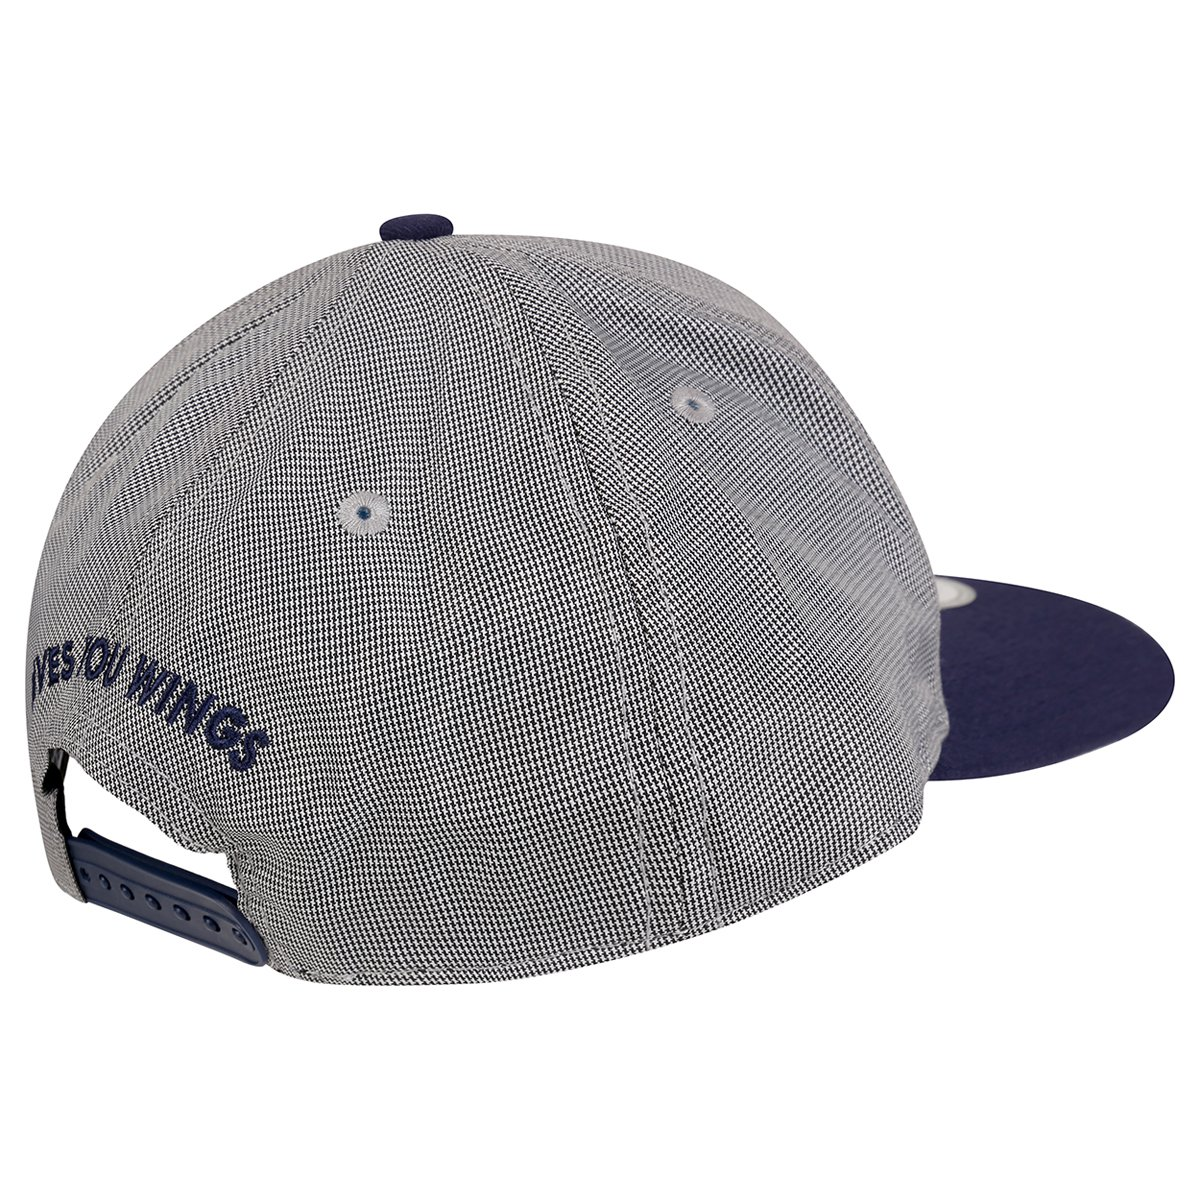 Boné New Era Red Bull 940 Sn Cloud Racing - Compre Agora  fc06698417c